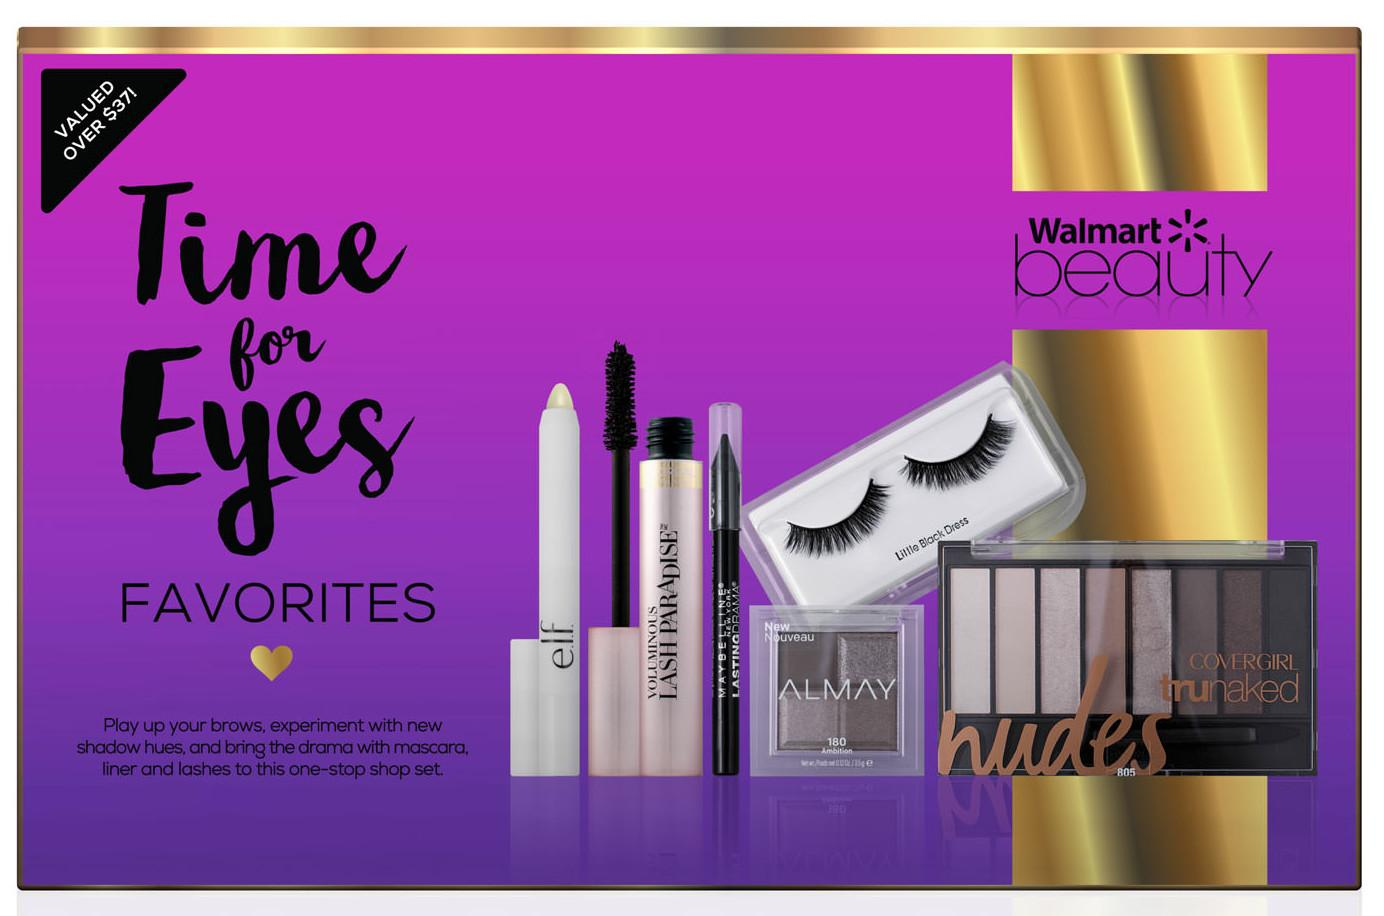 Walmart Beauty Favorites Box: Time For Eyes